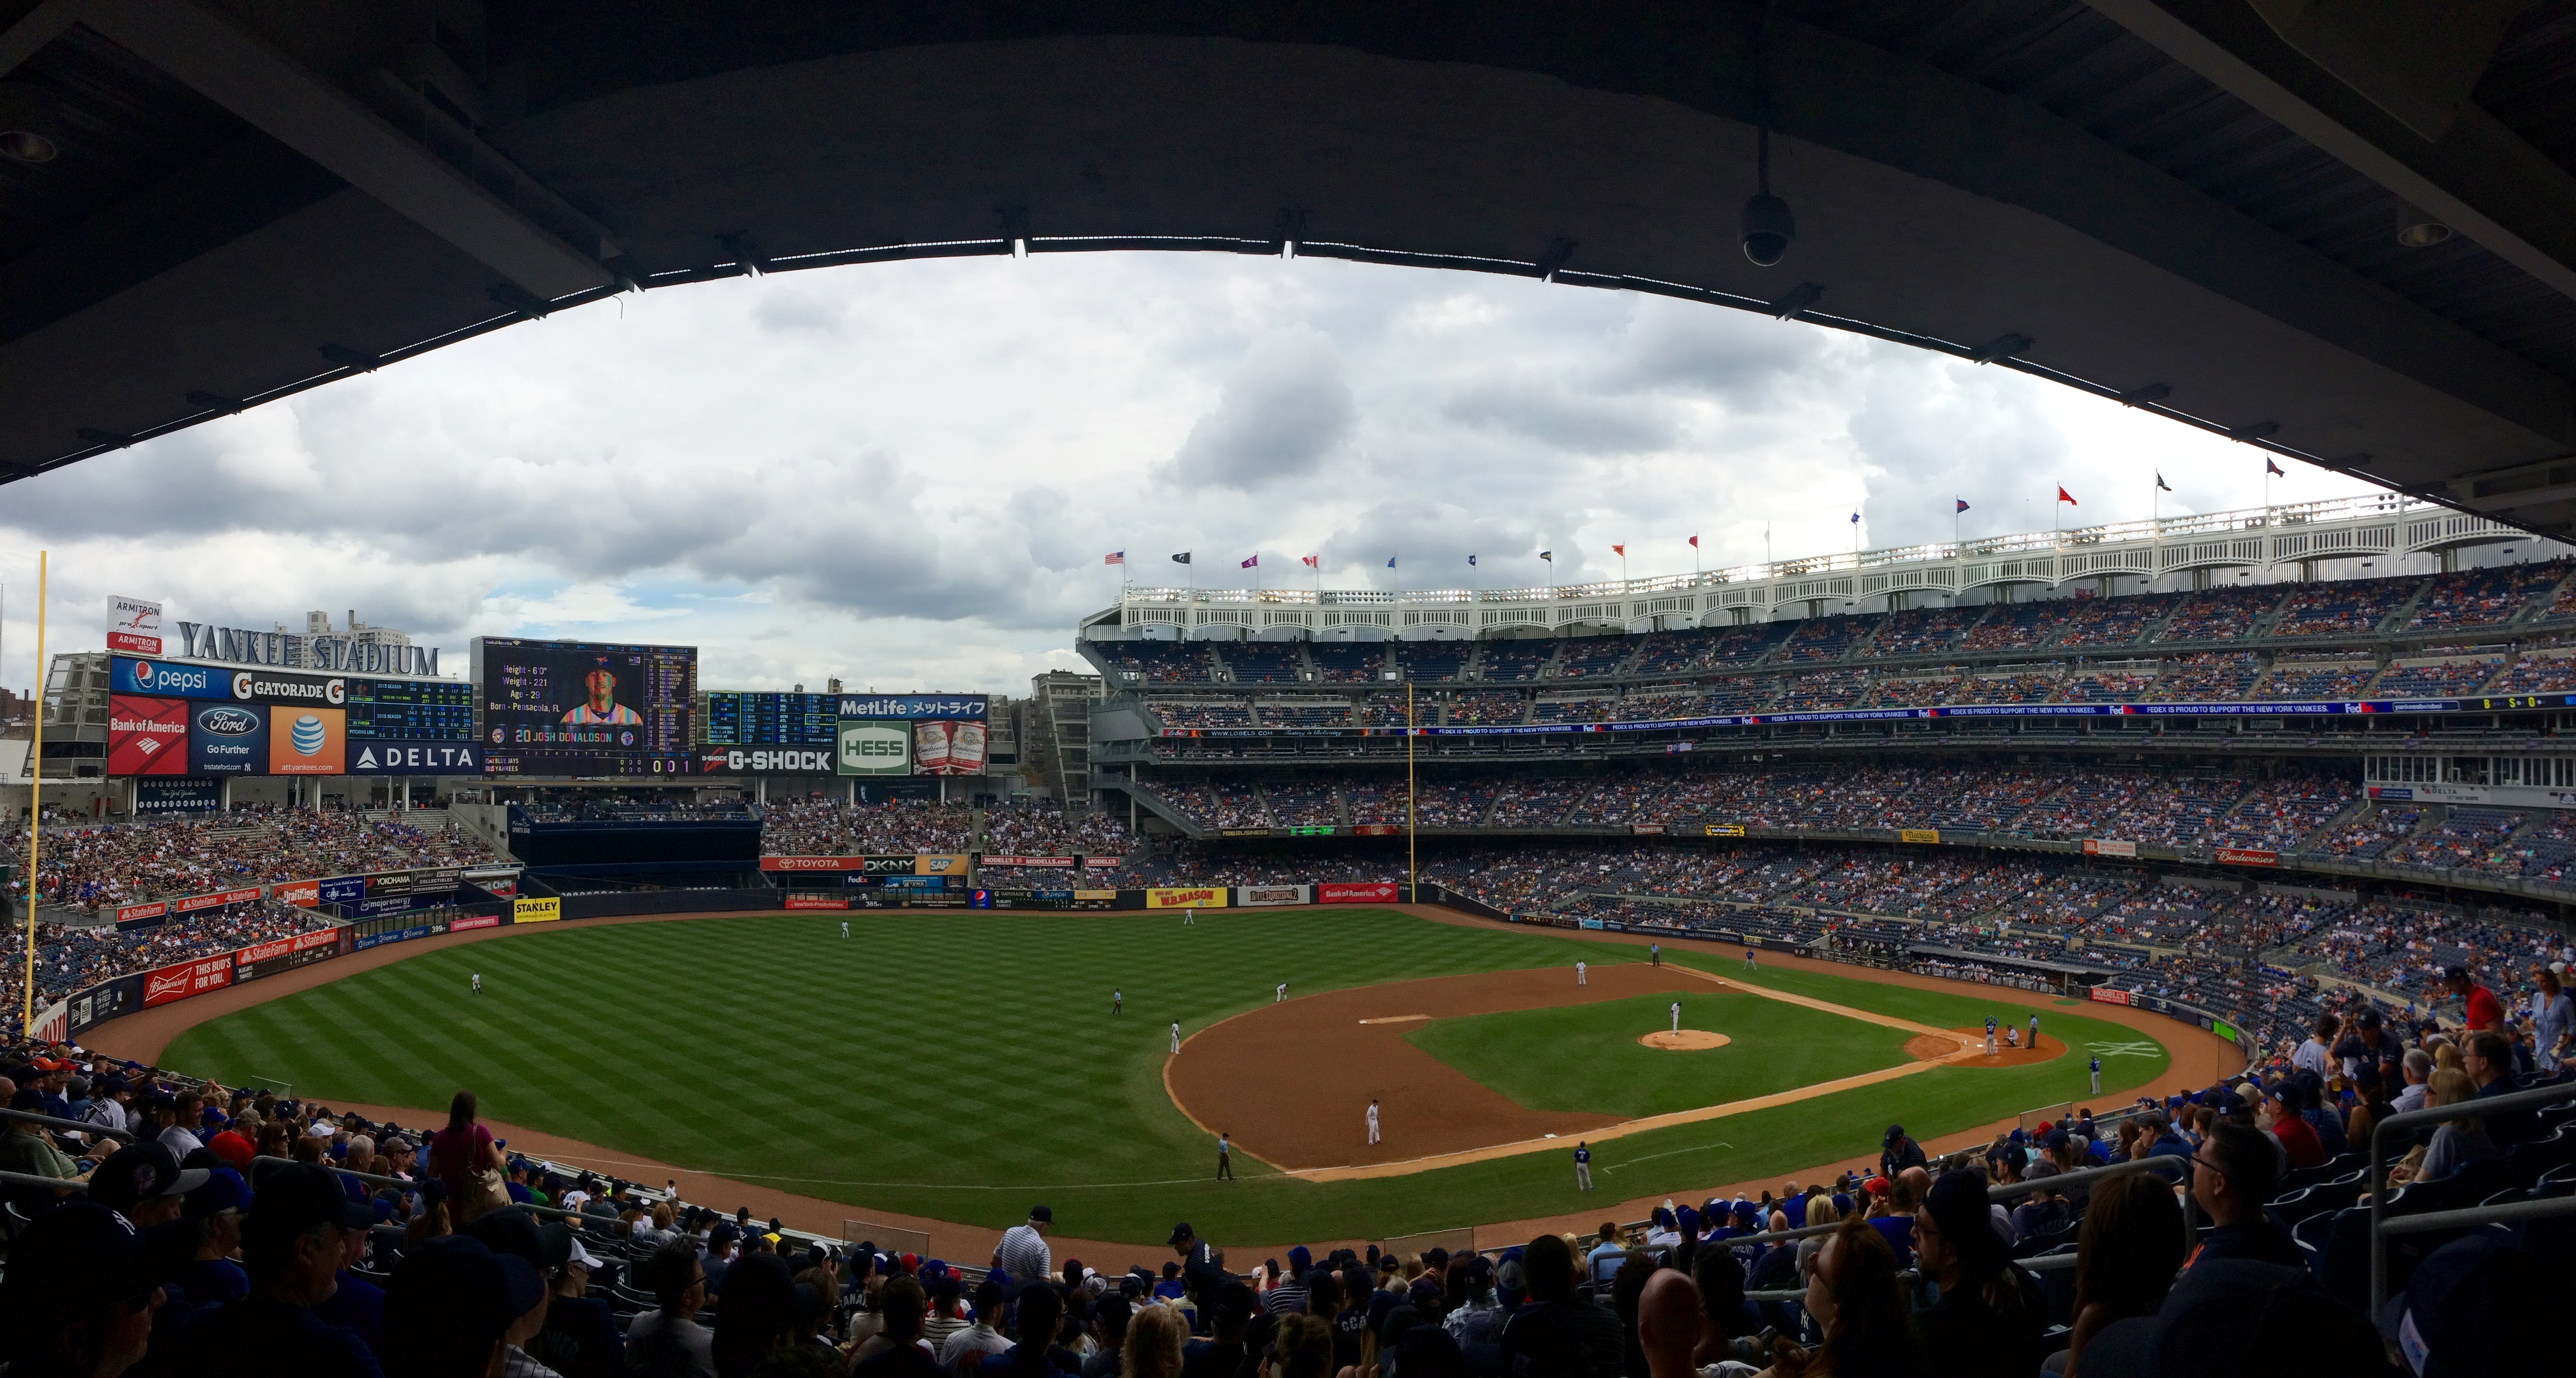 Yankee Stadium | Photo by Wilson Carletti (All Rights Reserved)